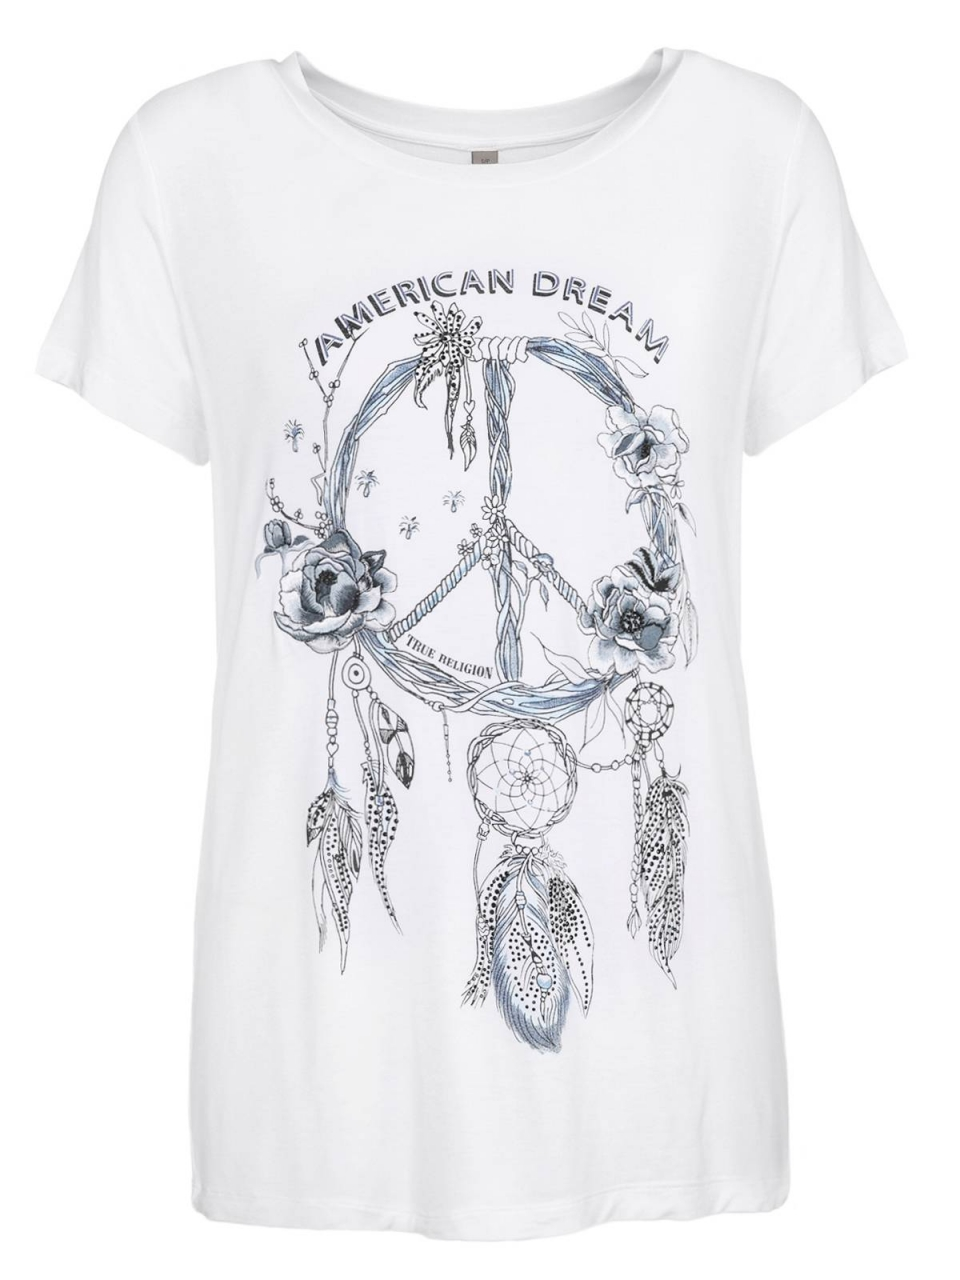 True Religion T-Shirt American Dream